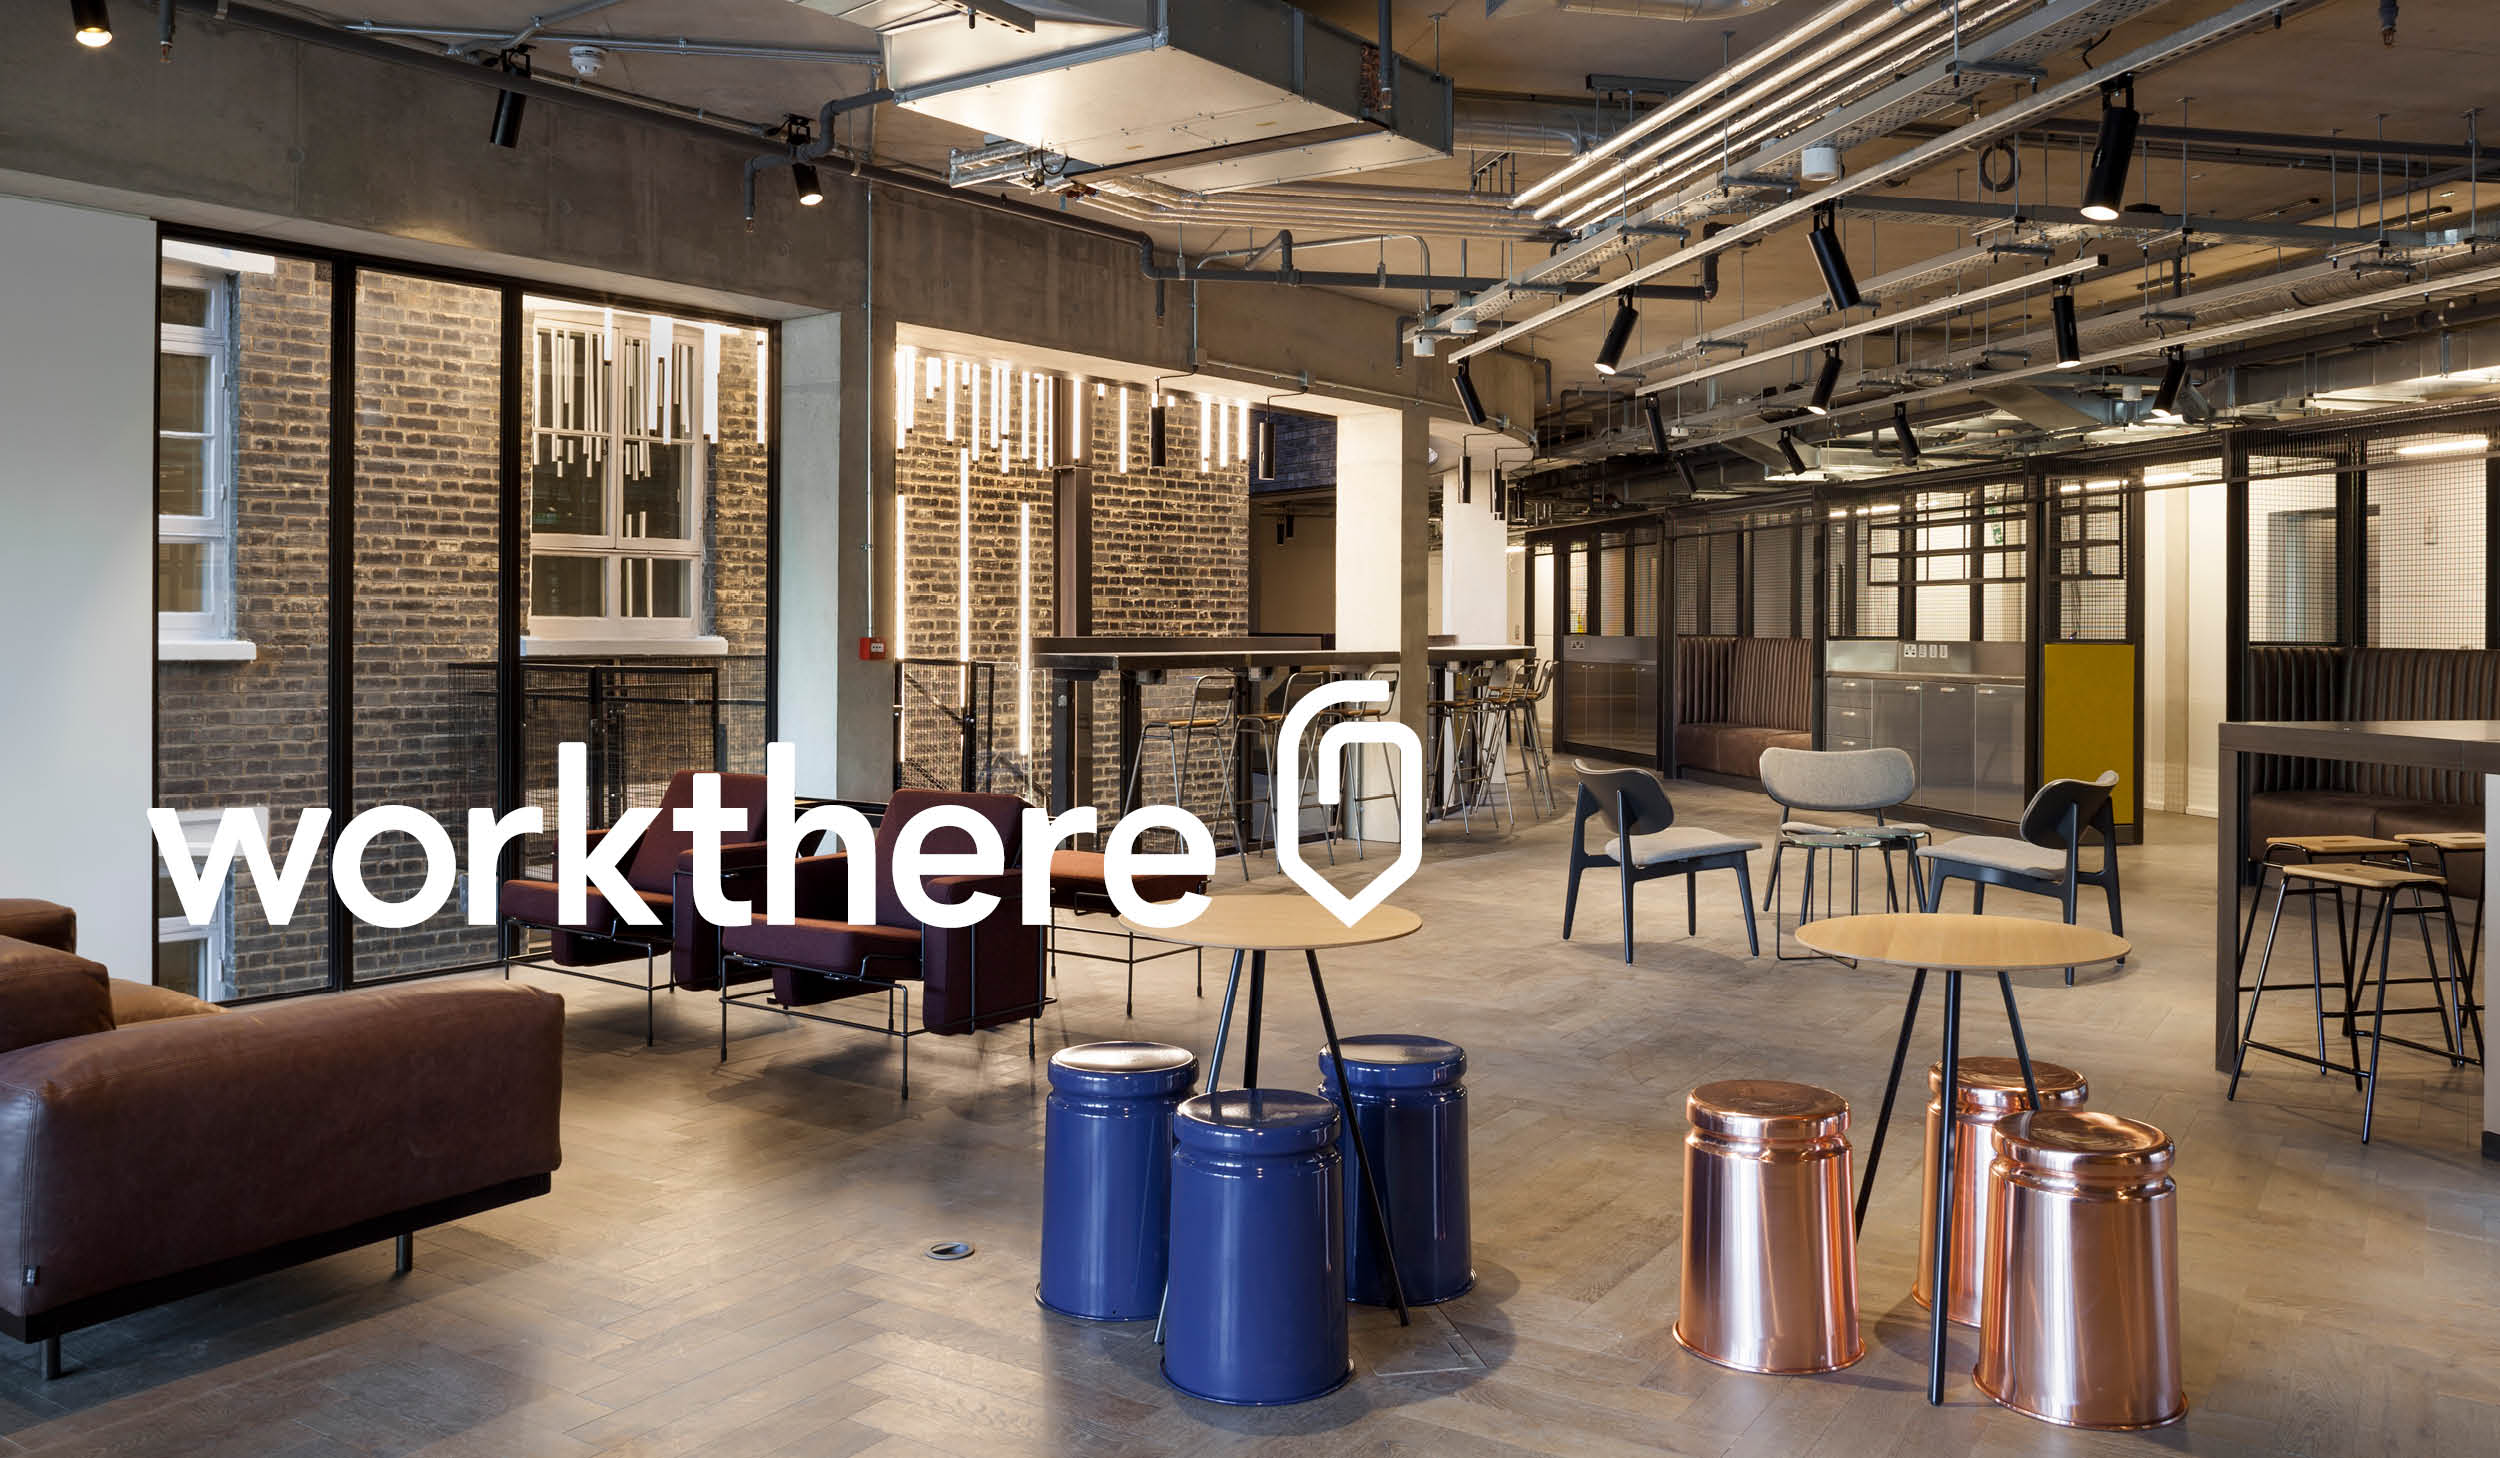 Workthere office image copy.jpg